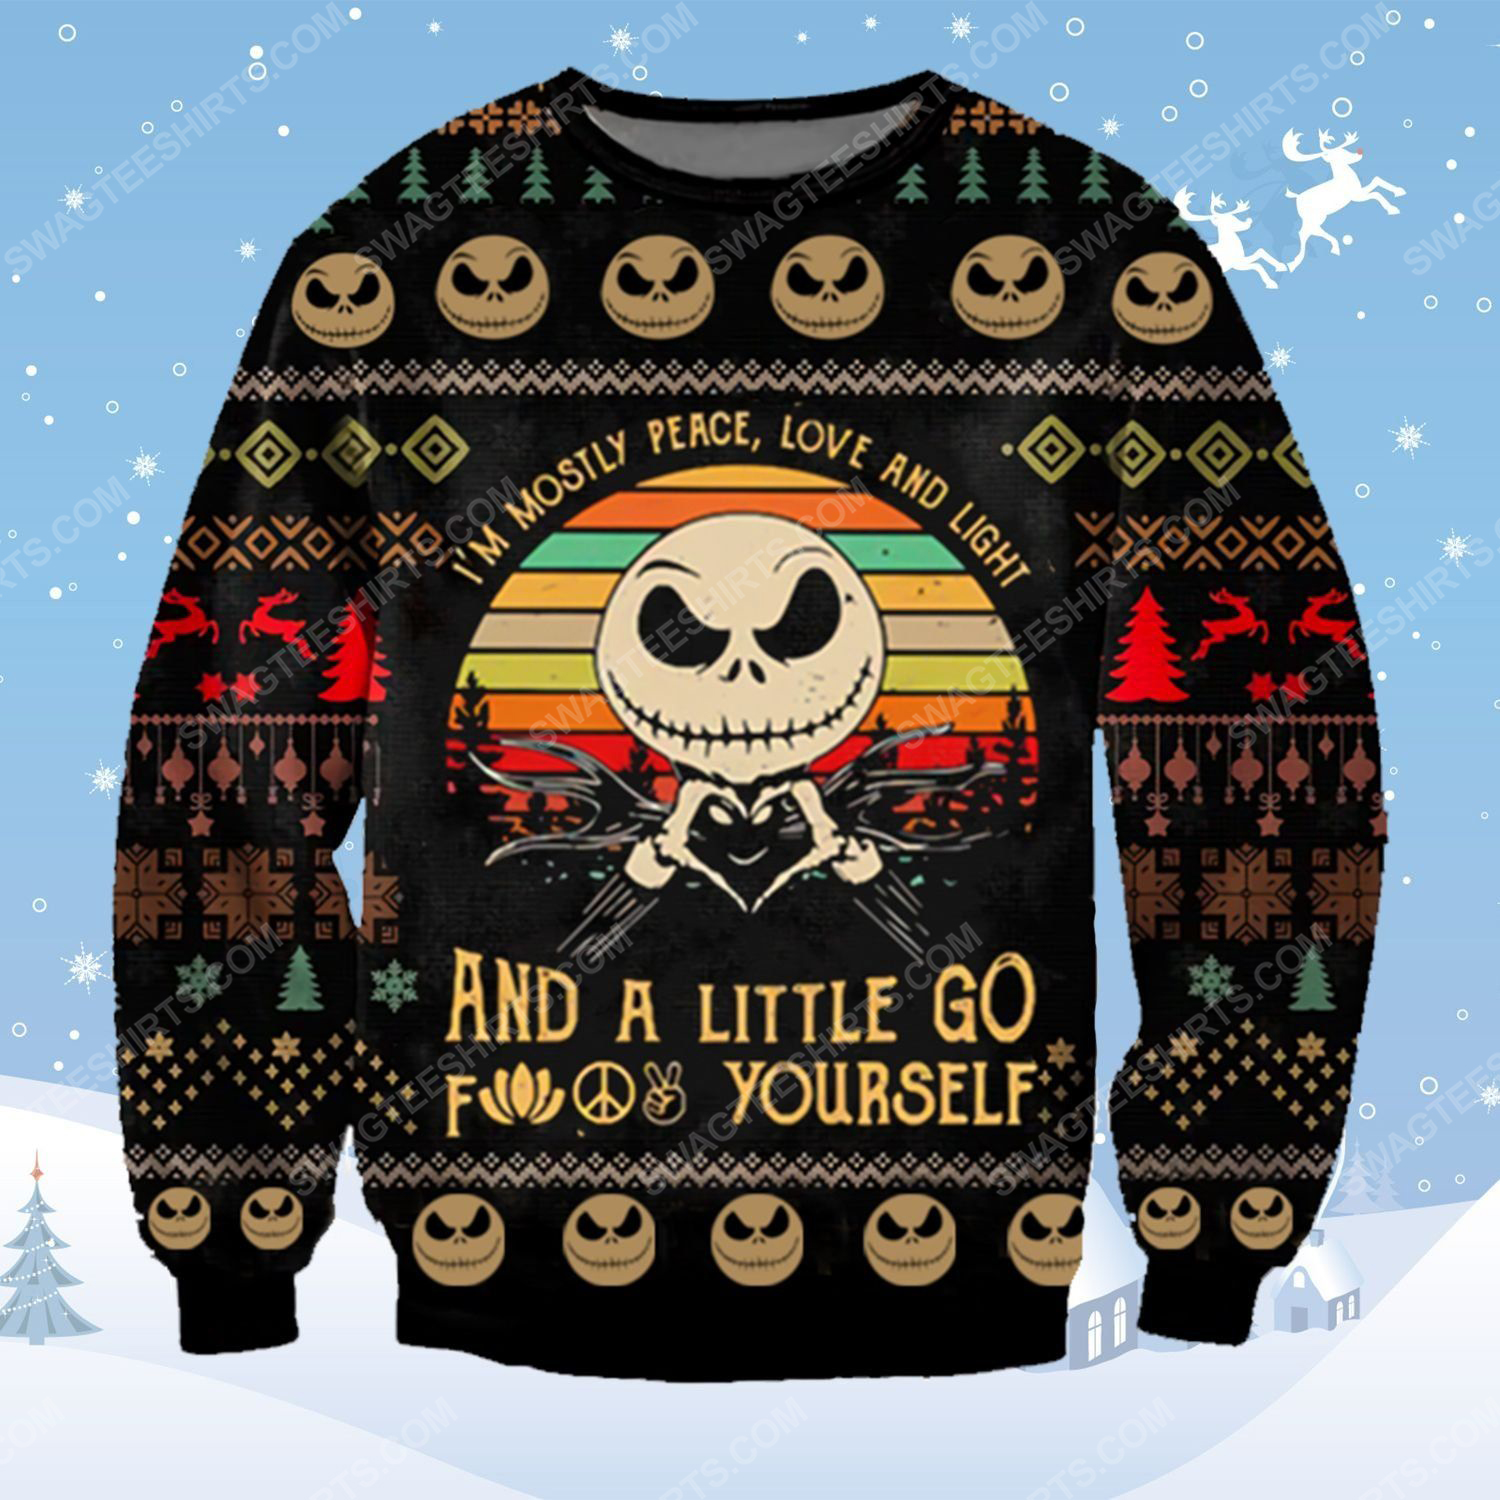 Jack skellington i'm mostly peace love and light ugly christmas sweater